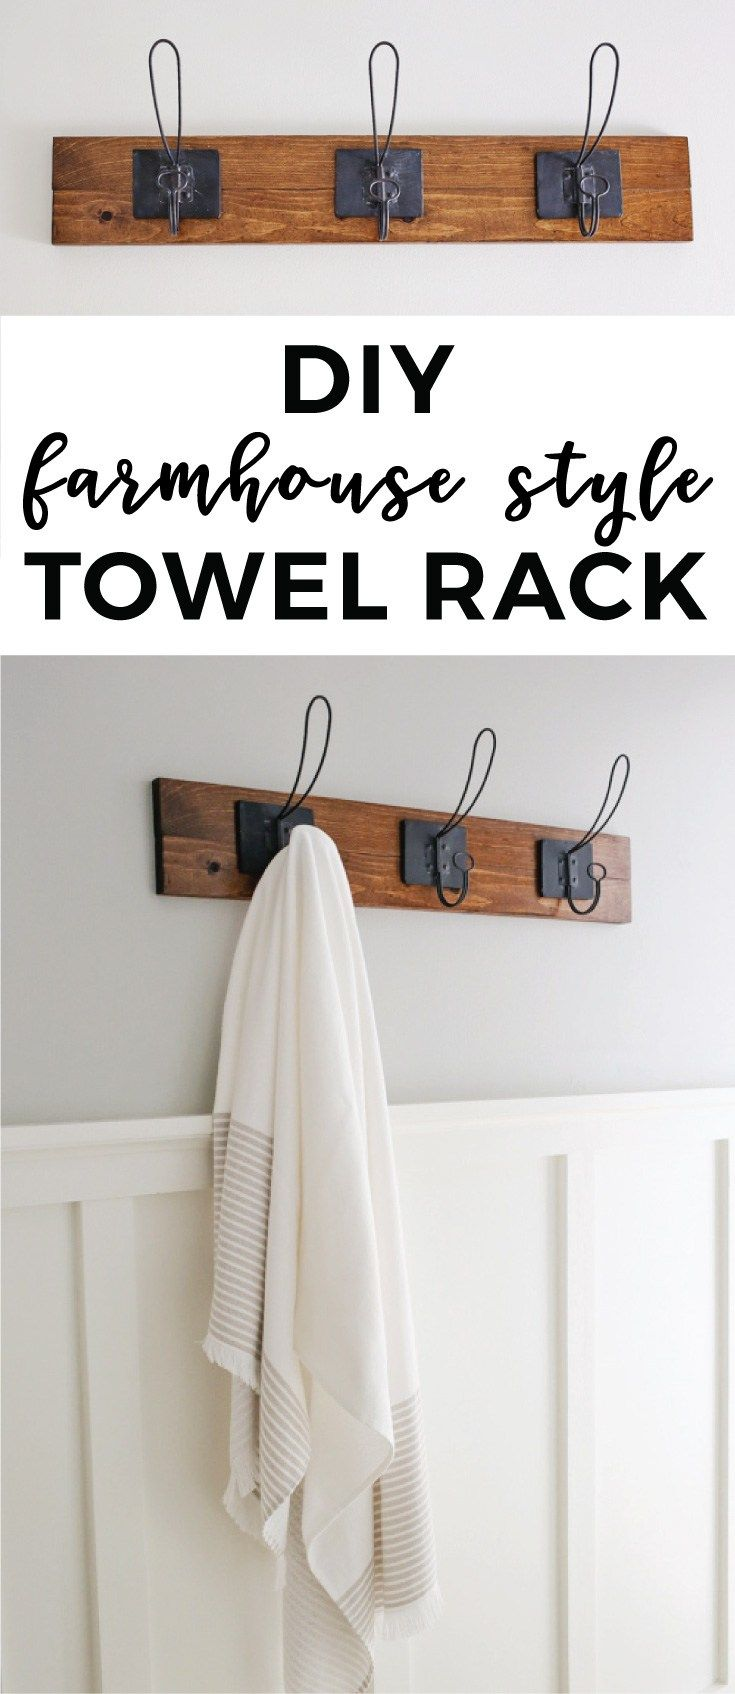 Kitchen towel hanging ideas - Farmhouse Style Diy Towel Rack